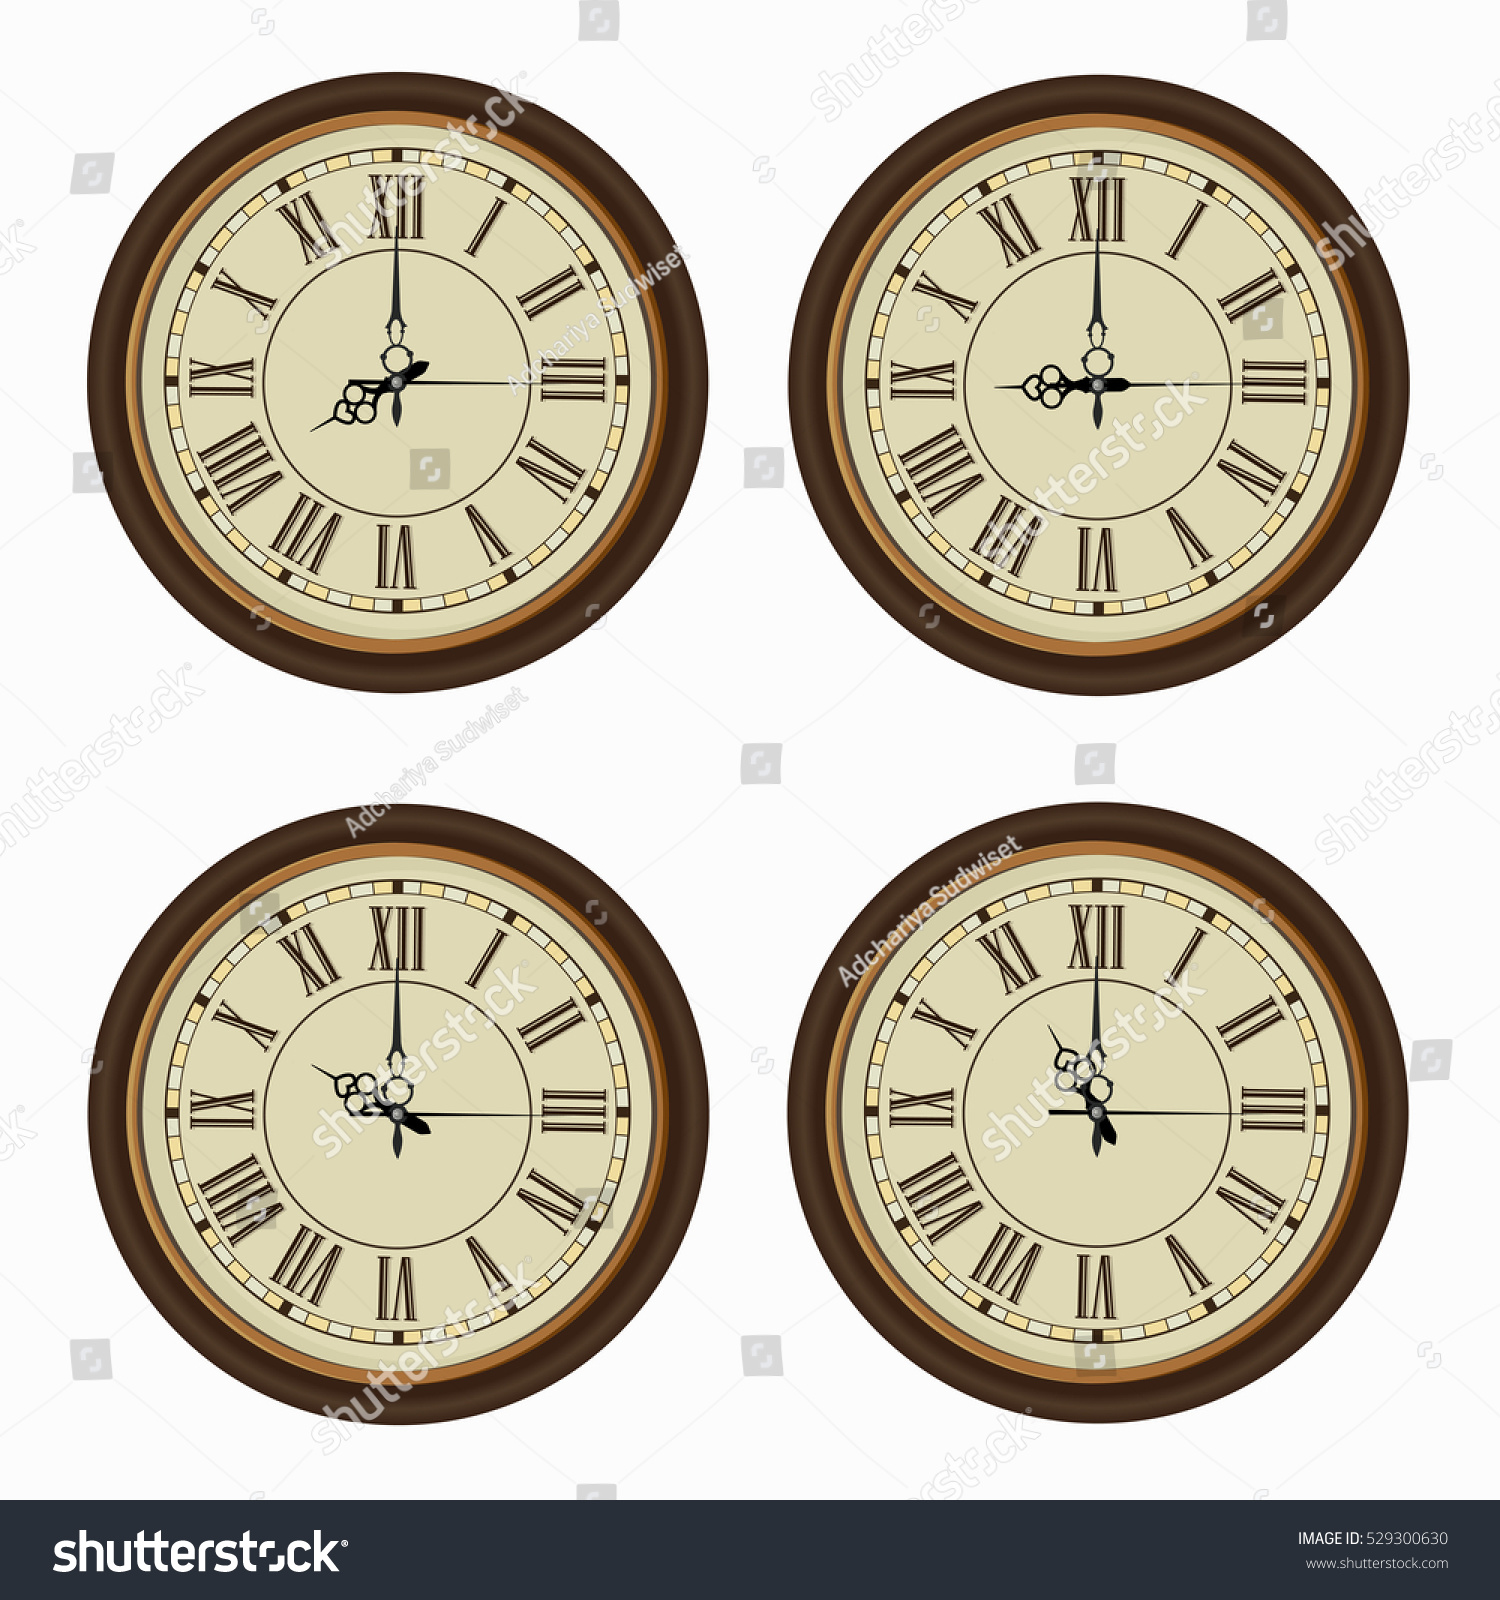 Set Realistic Wall Clocks Old Clock Stock Vector (Royalty